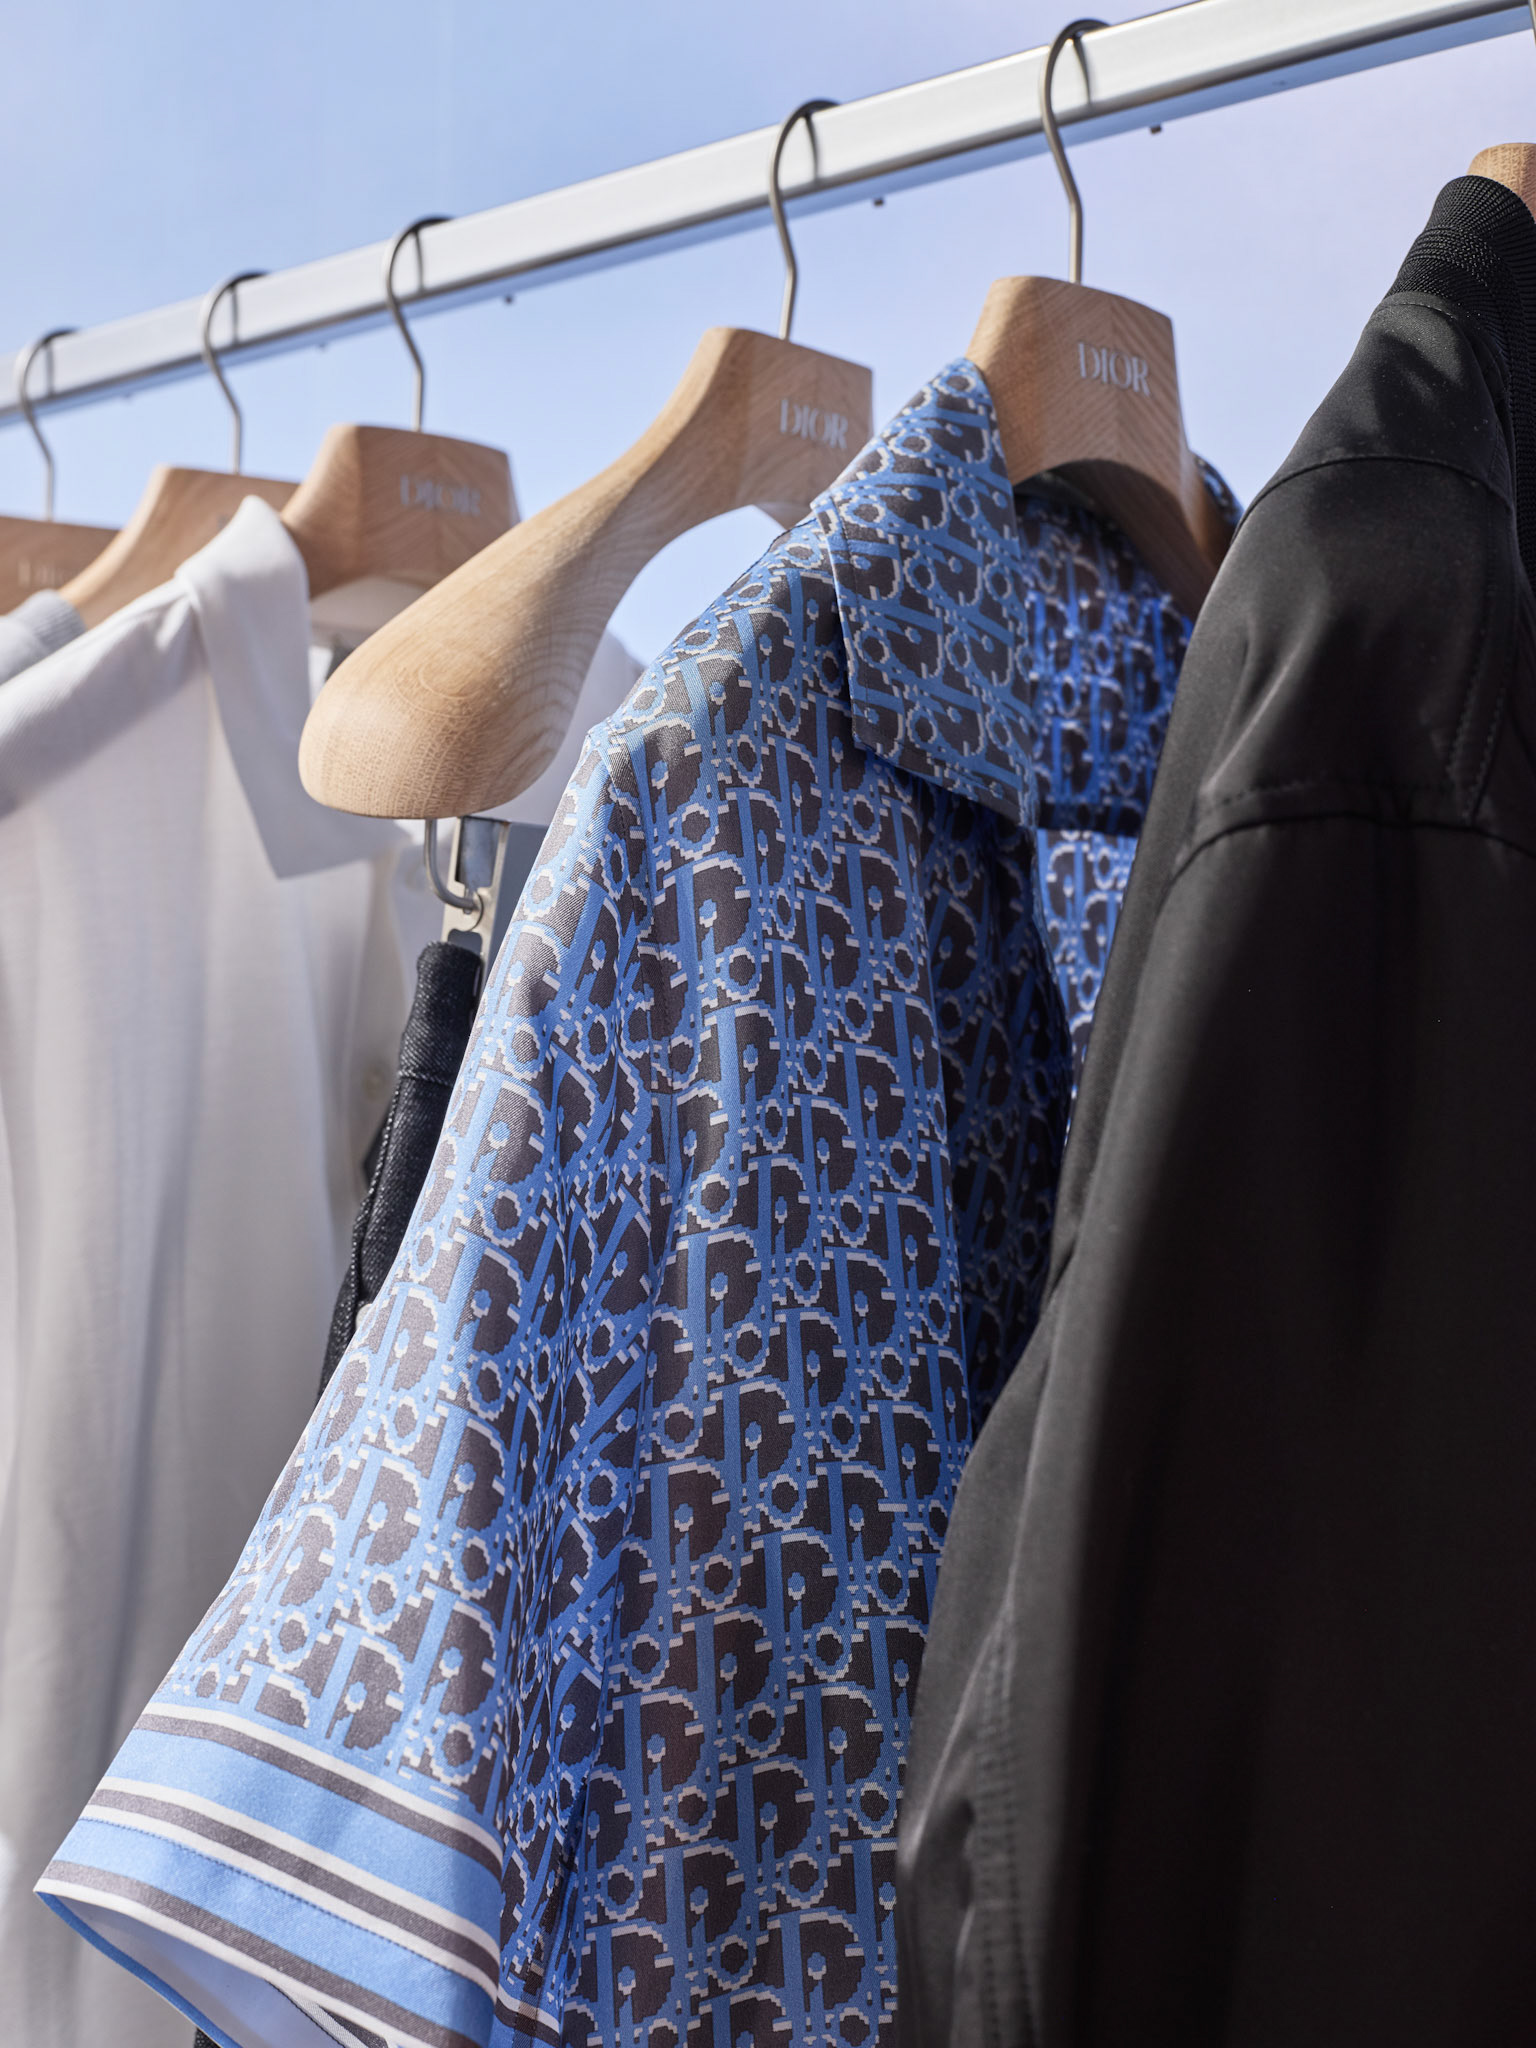 Retail Photography Dior Detail Shot at Pop up Store